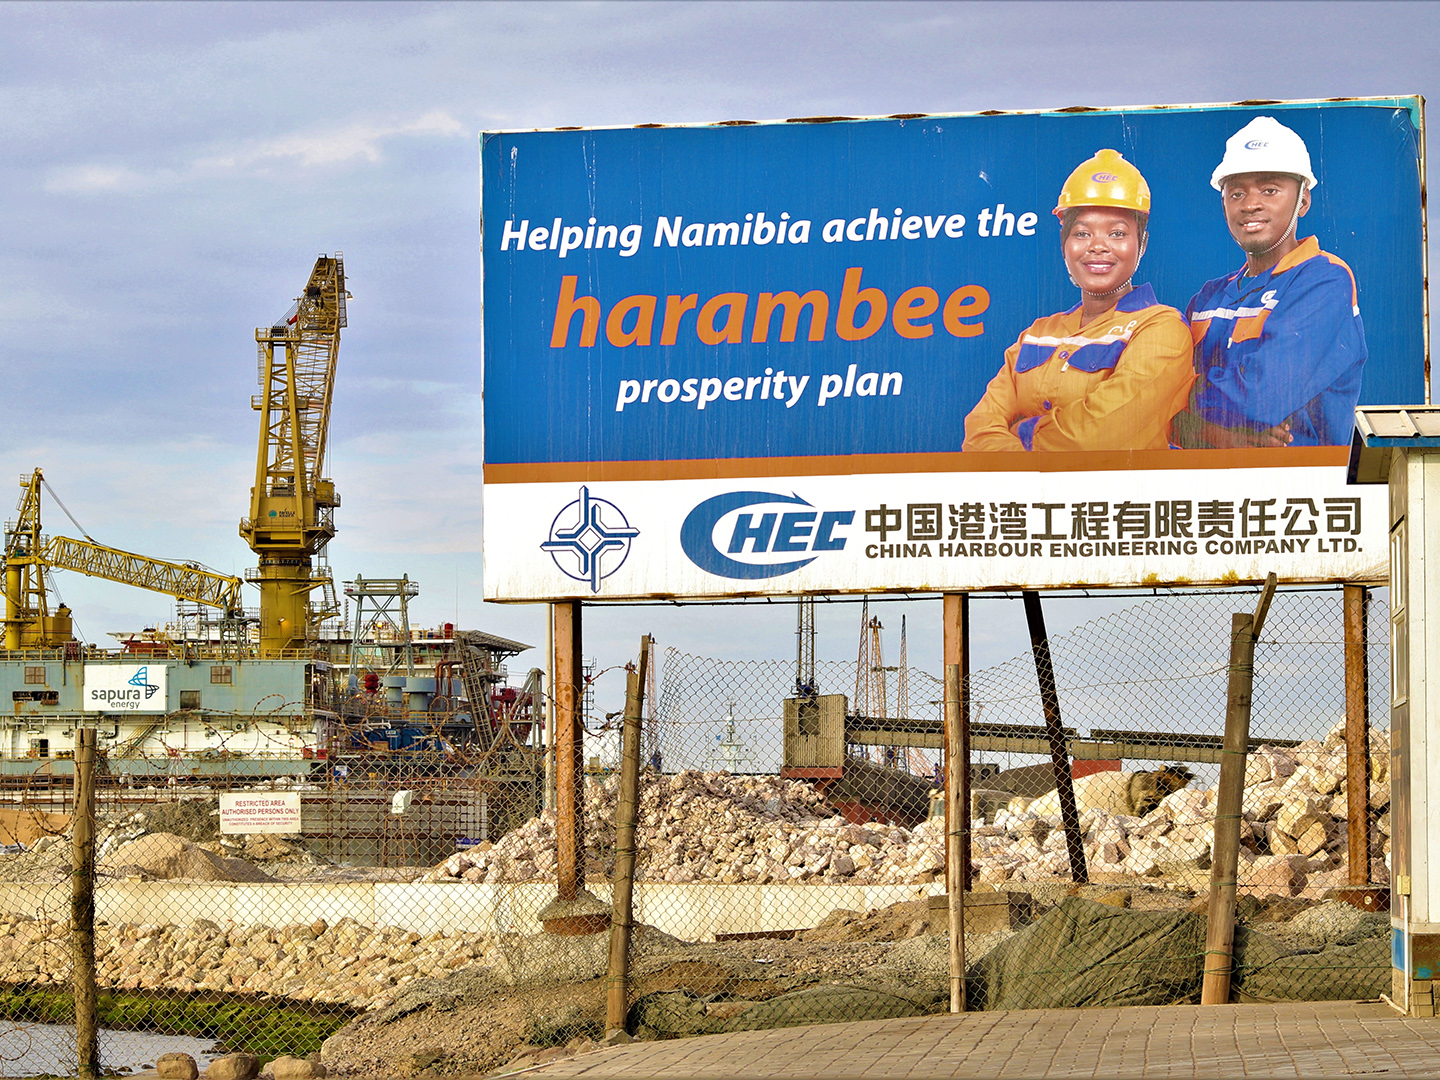 Billboard in front of construction site